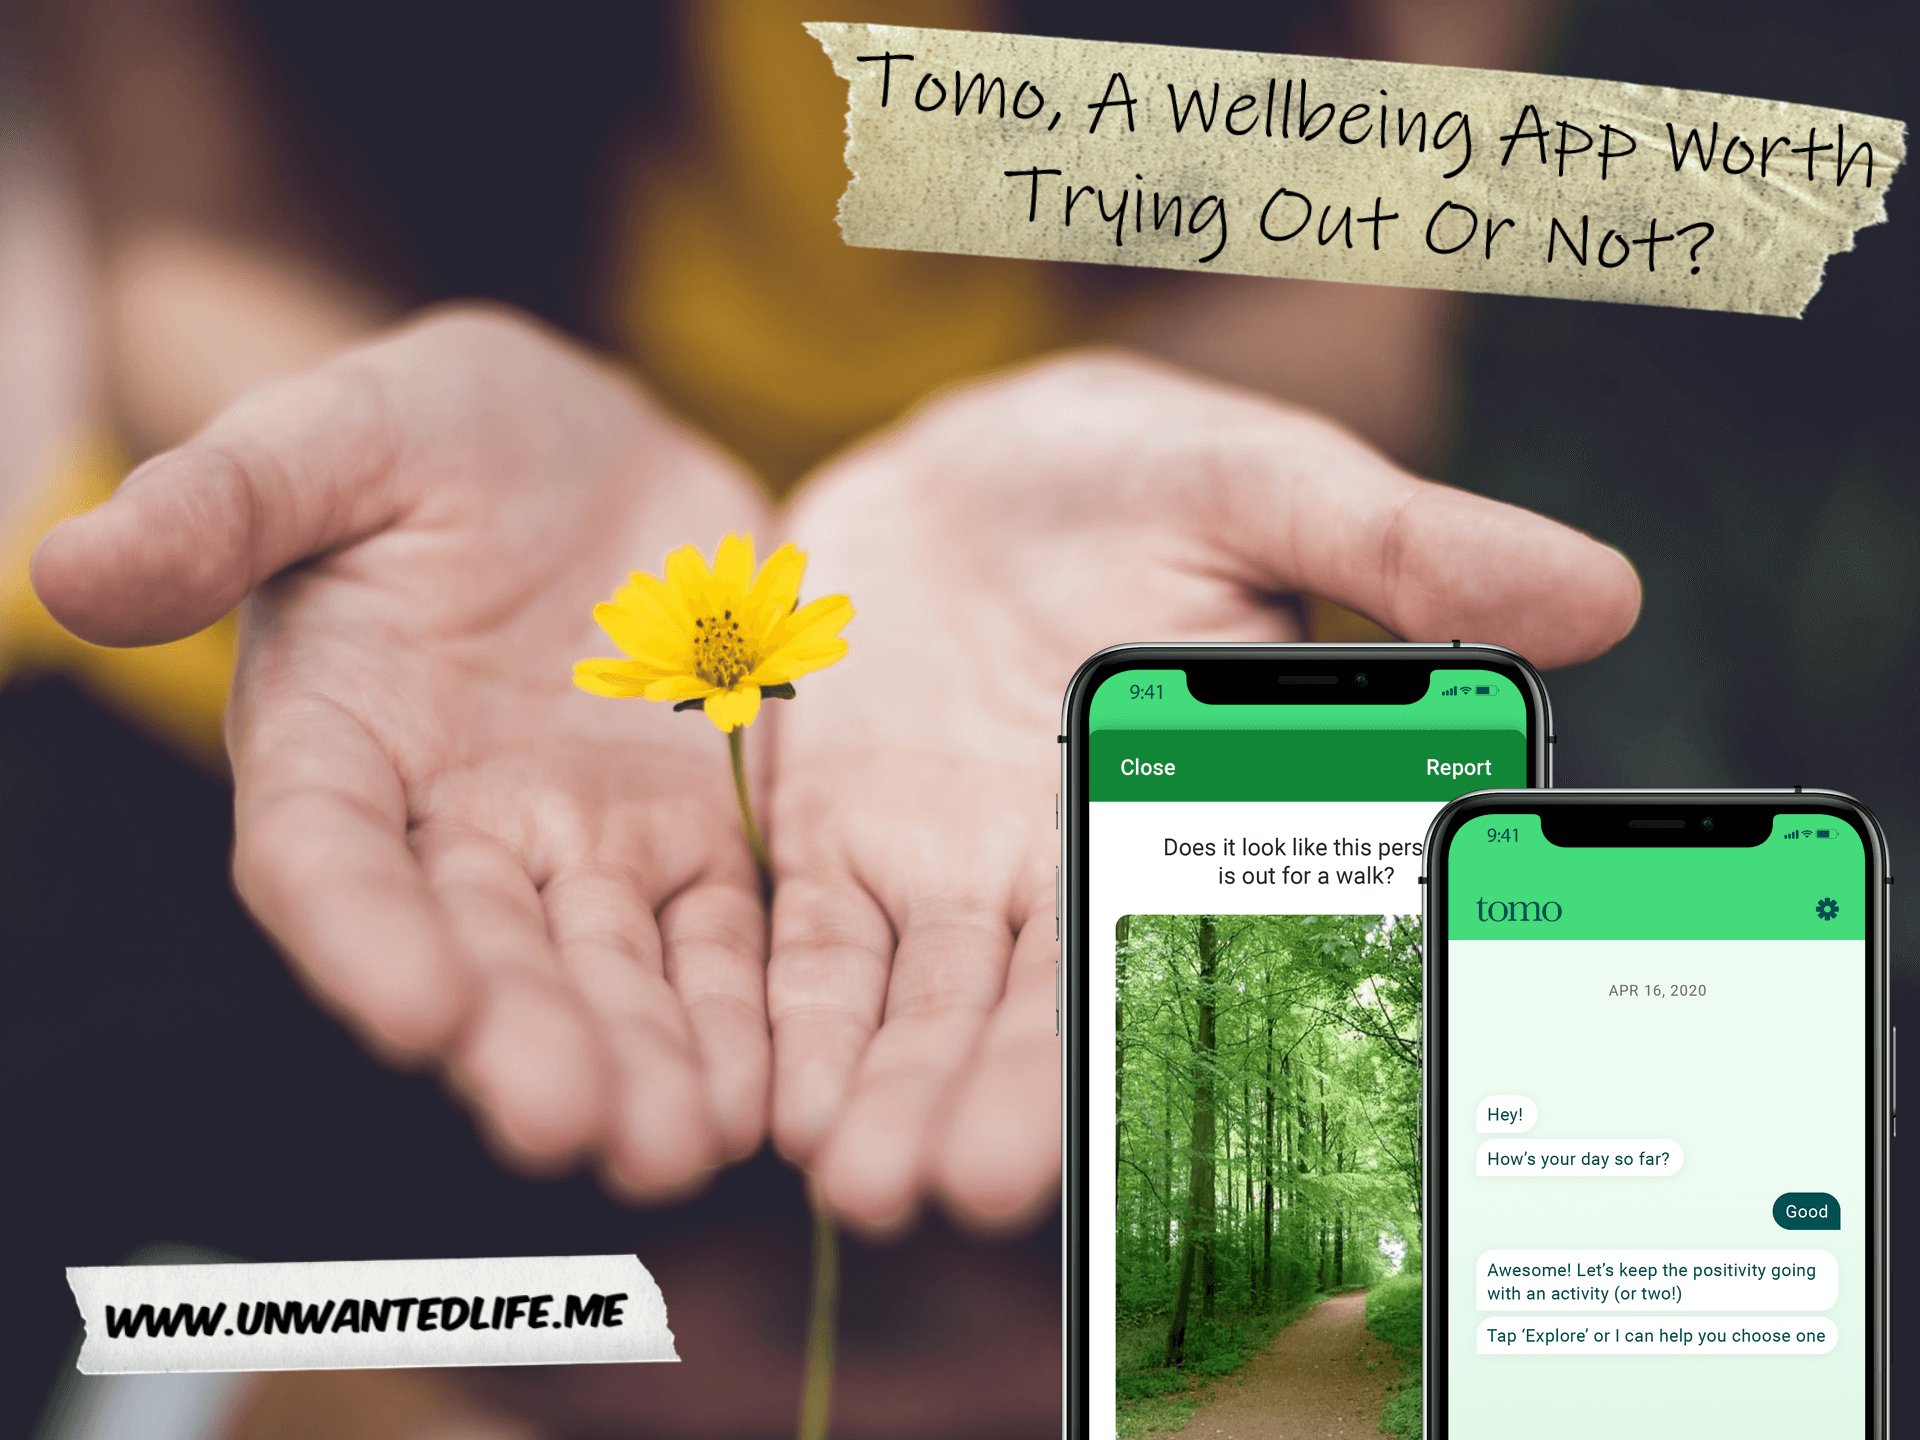 A photo of a woman's hand together, opened palms up, with a flower between their hands, to represent the topic of the article - Tomo, A Wellbeing App Worth Trying Out Or Not?